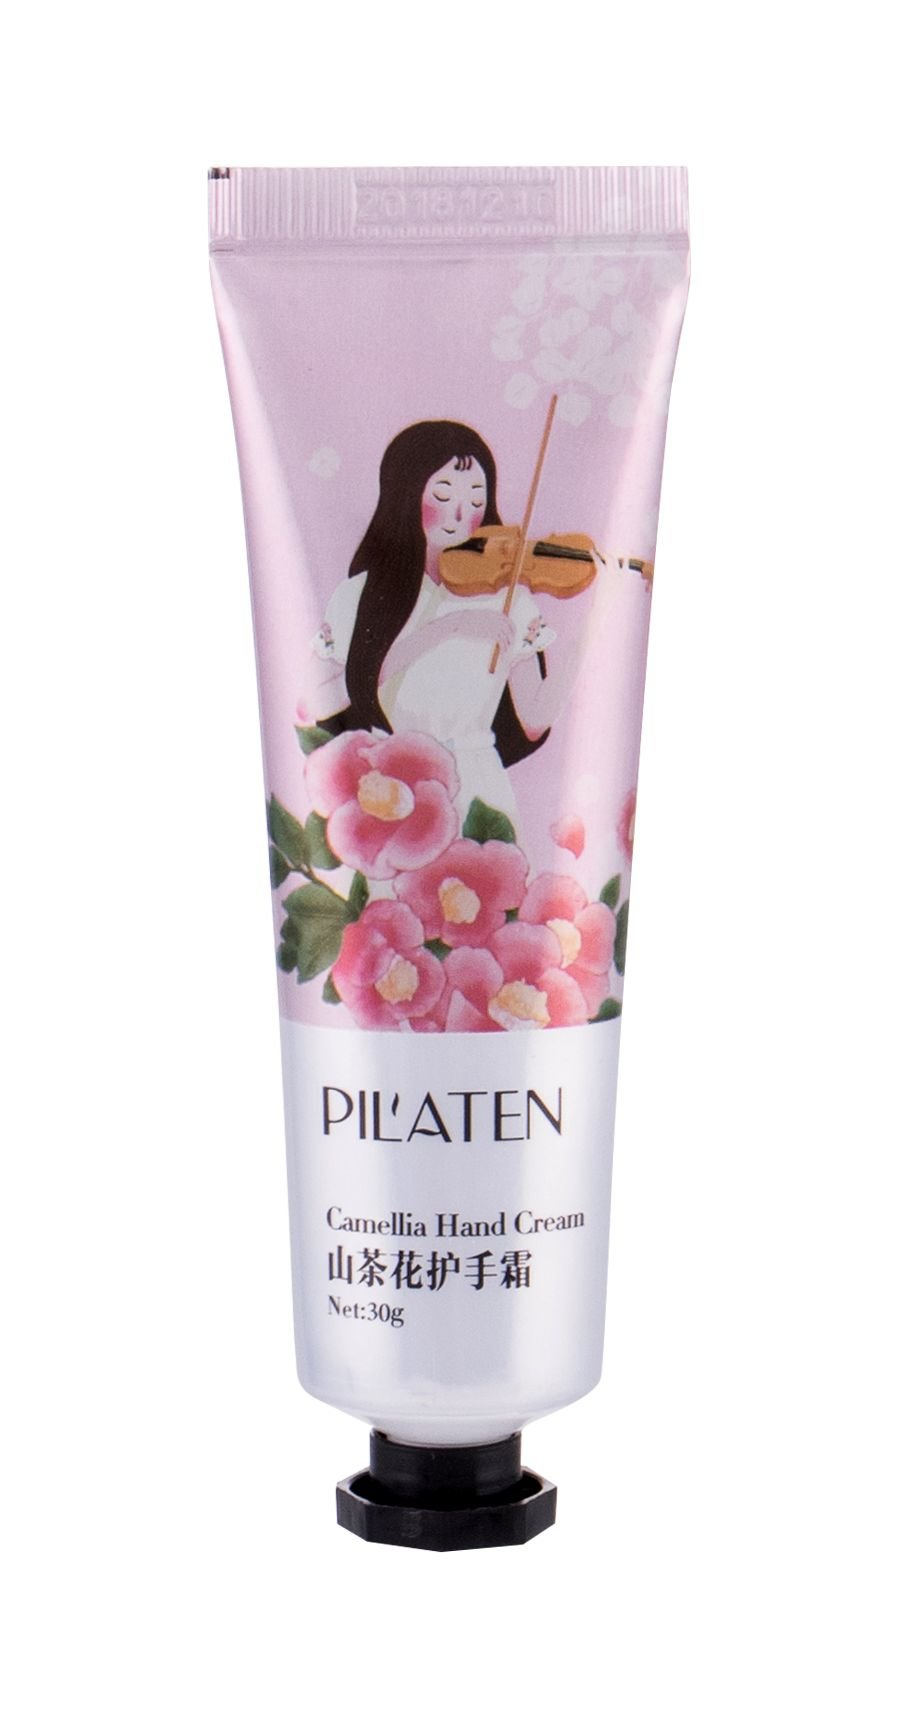 Pilaten Camellia Hand Cream 30ml